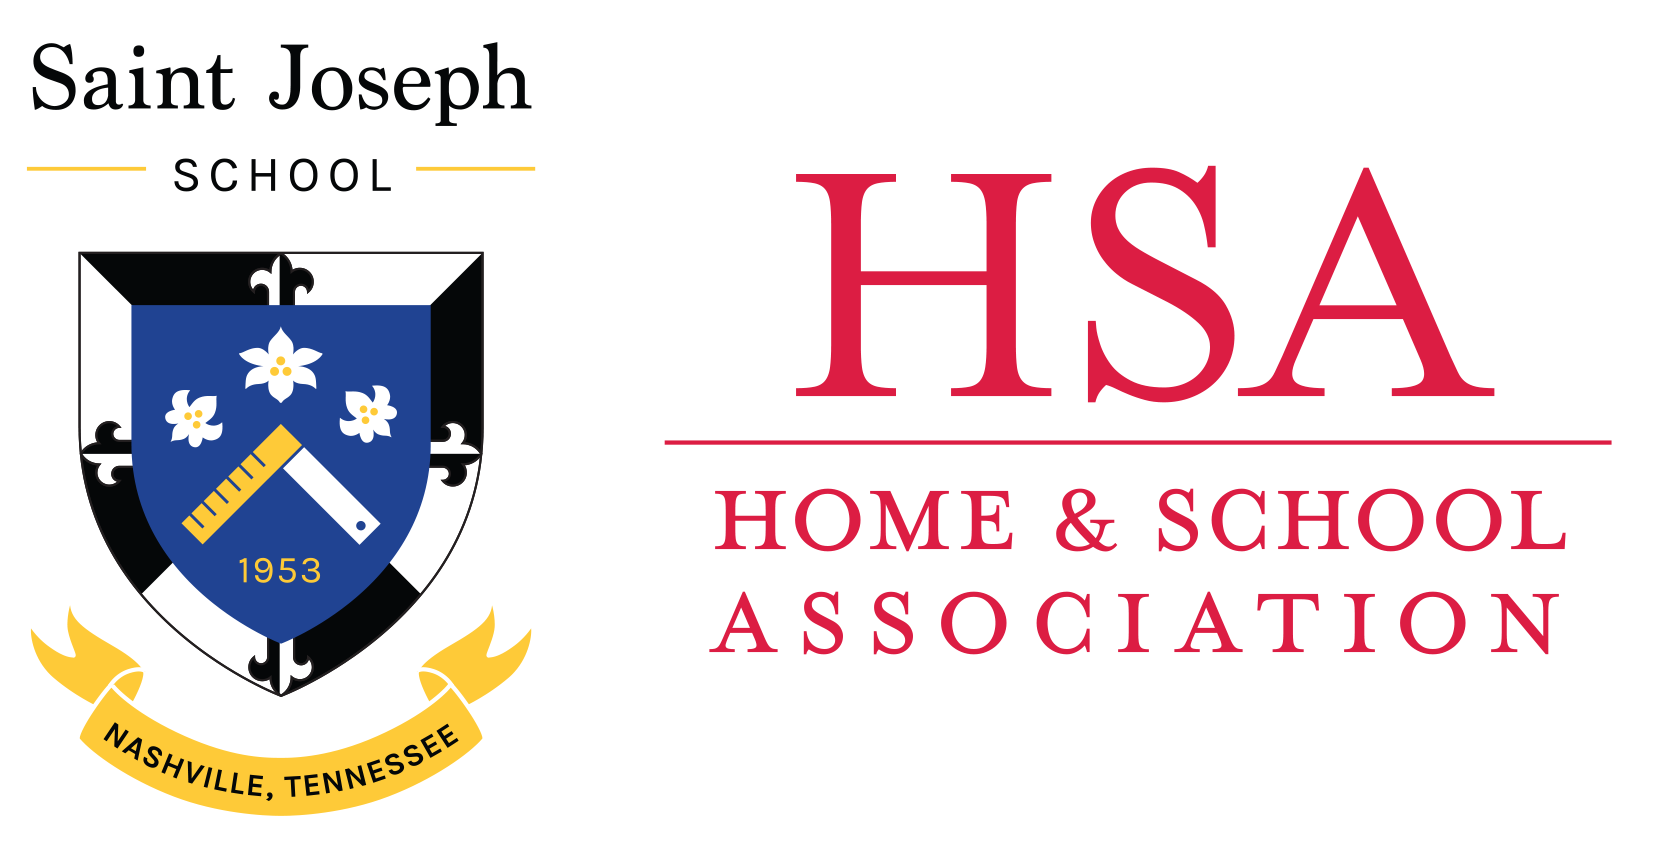 hsa-logos-horizontal color.png